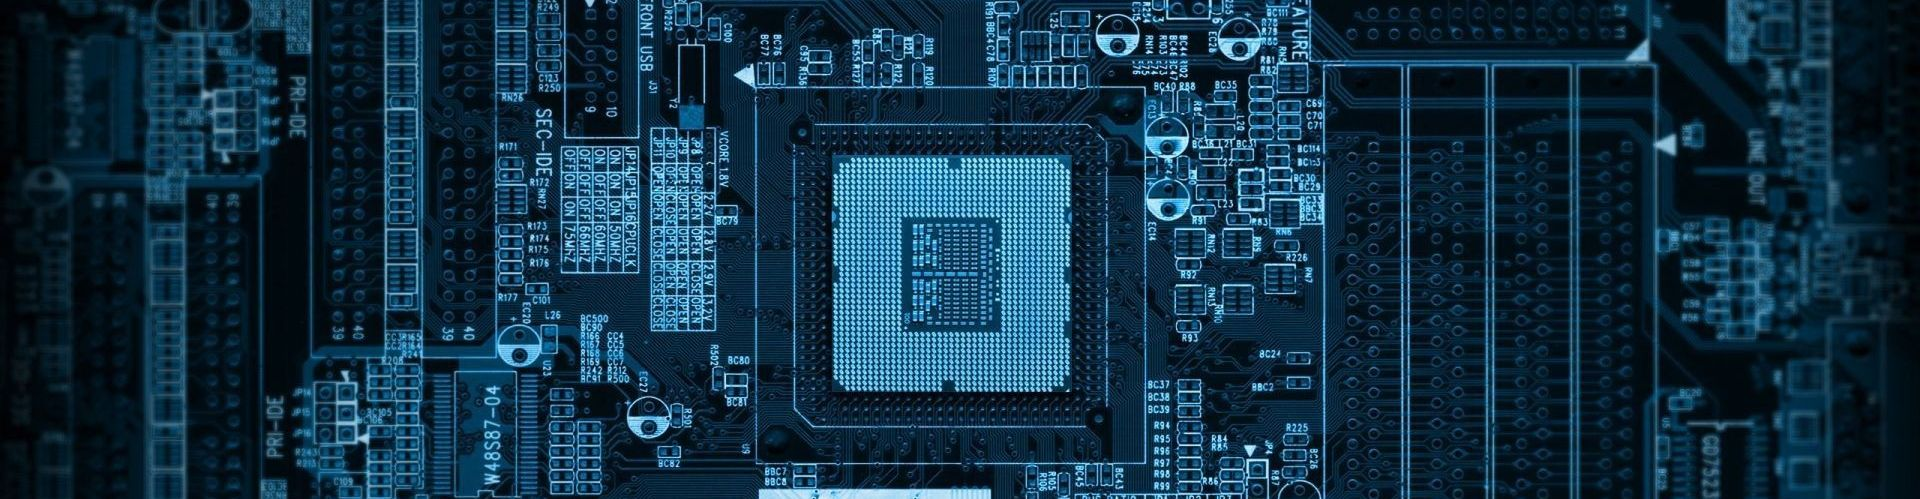 Zettaone Technologies India Pvt Ltd Pcb Design System Engineering Electronic Circuit Pune High Speed Layout